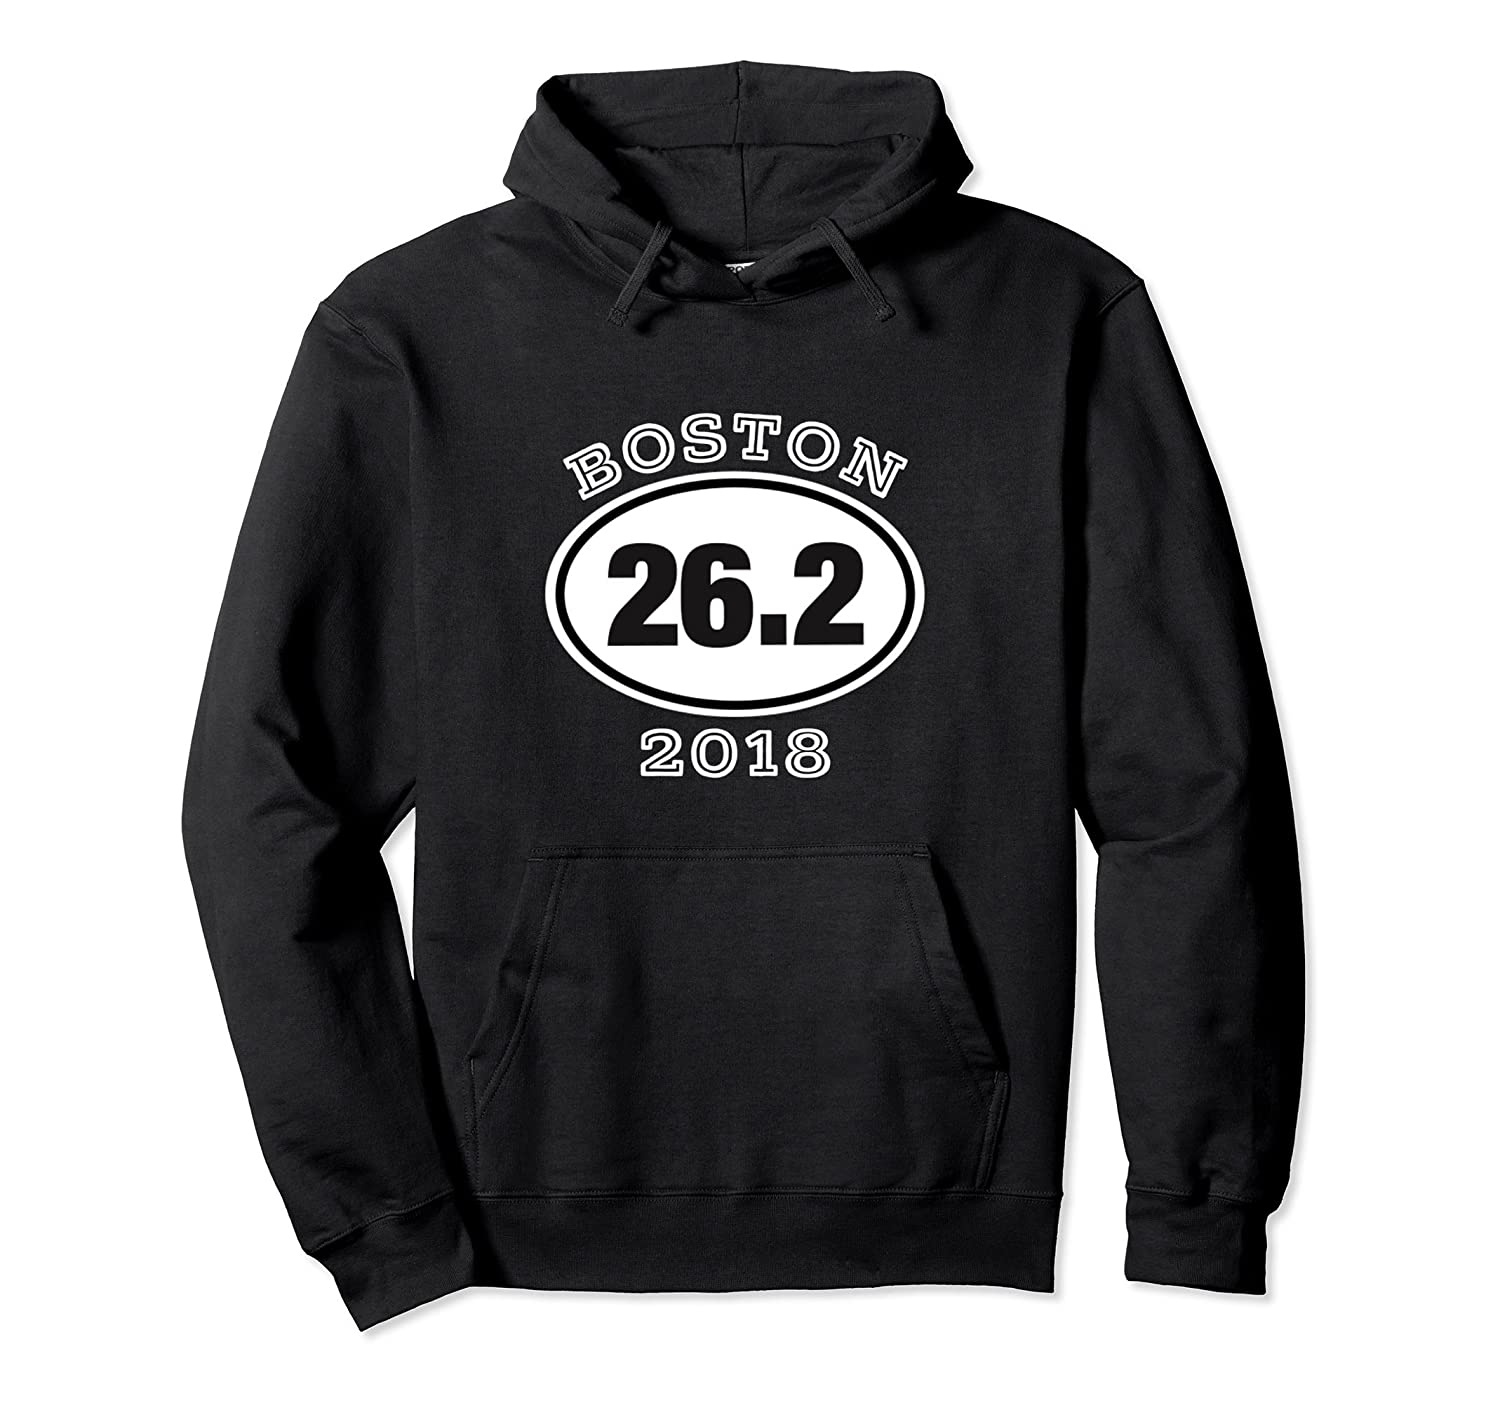 2018 Boston 26.2 Running Shirt - Hoodie-TH